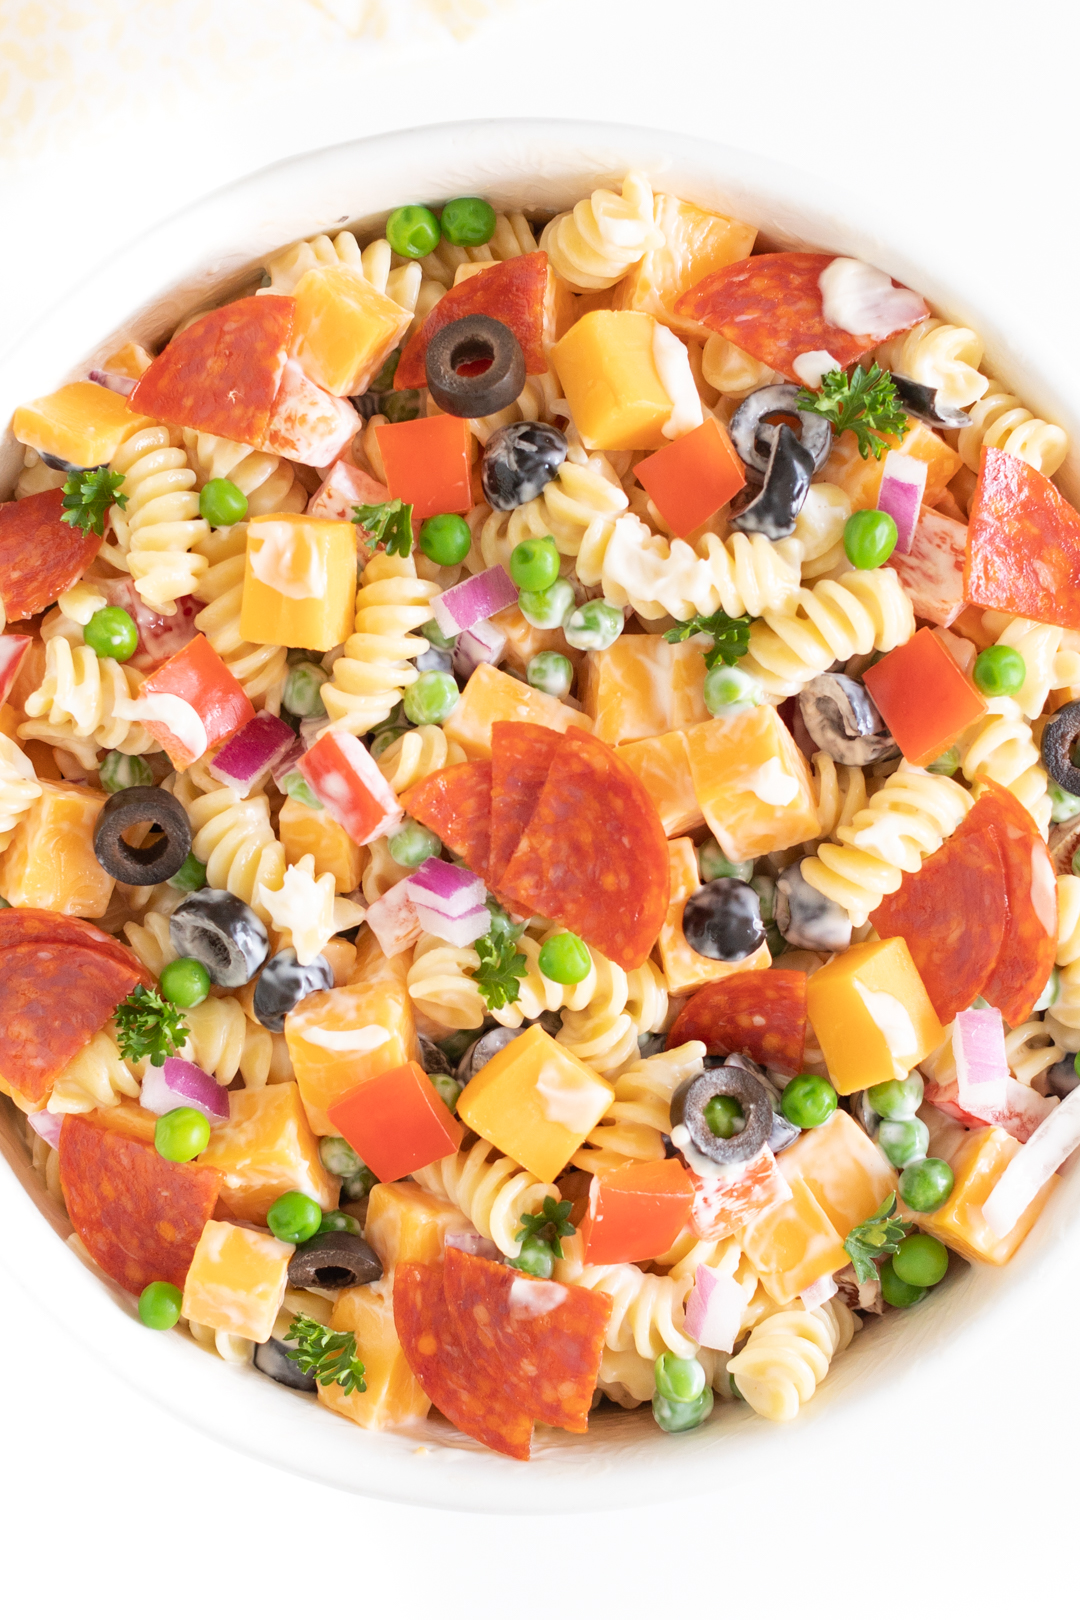 up close of pasta salad in a bowl topped with cheese chunks, pepperoni quarters, parsley, chopped red peppers and more.